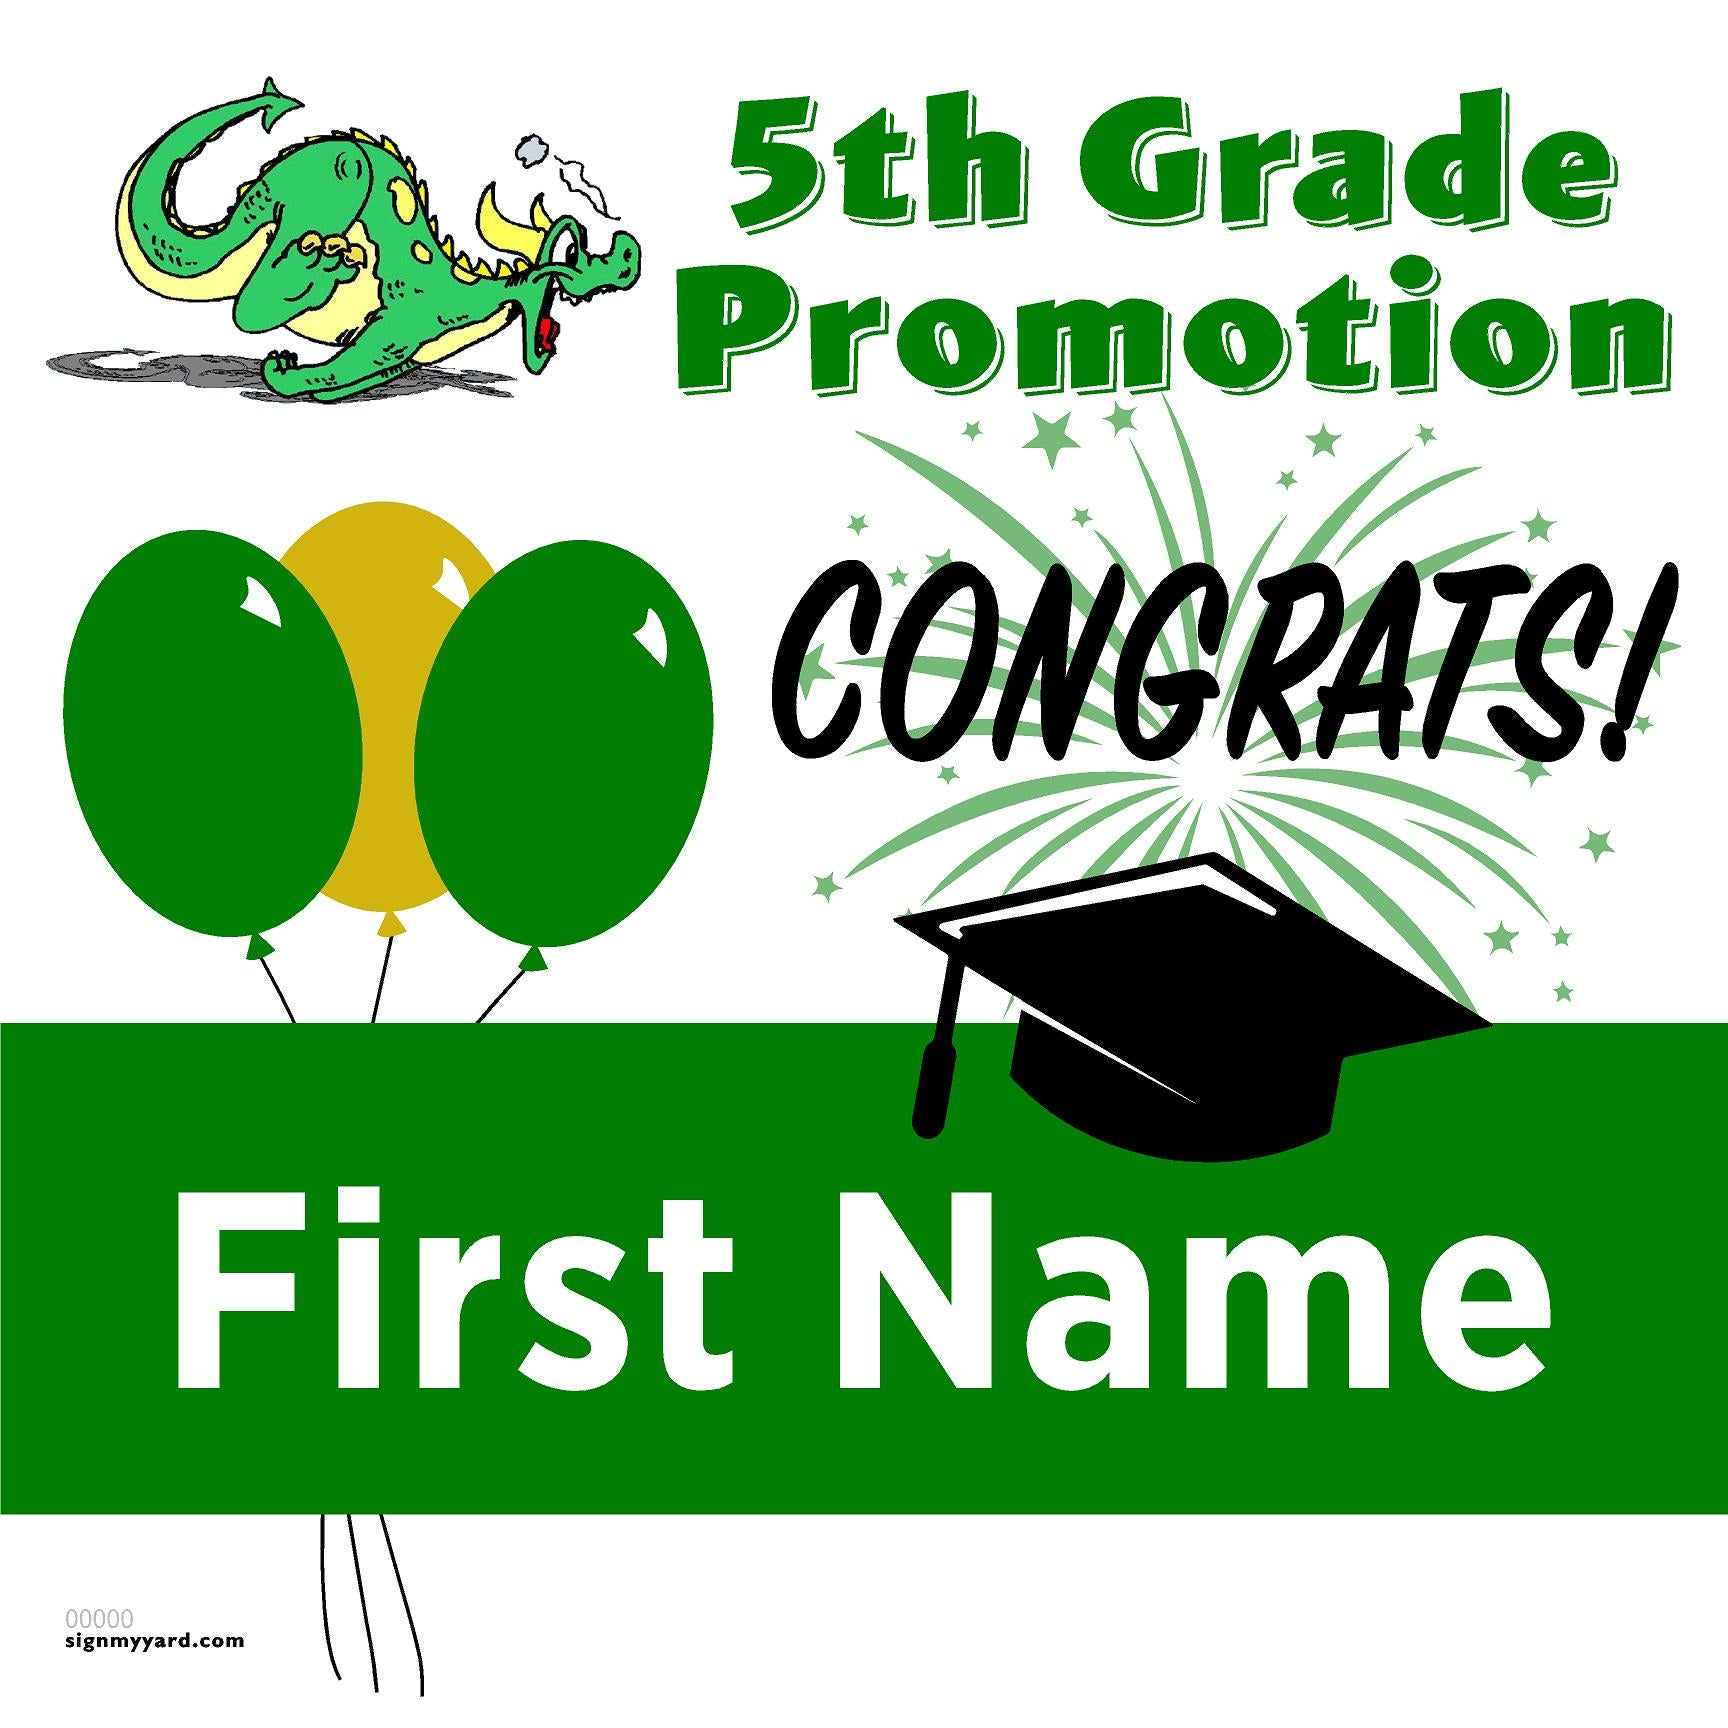 Vintage Hills Elementray School 5th Grade Promotion 24x24 #shineon2027 Yard Sign (Option A)